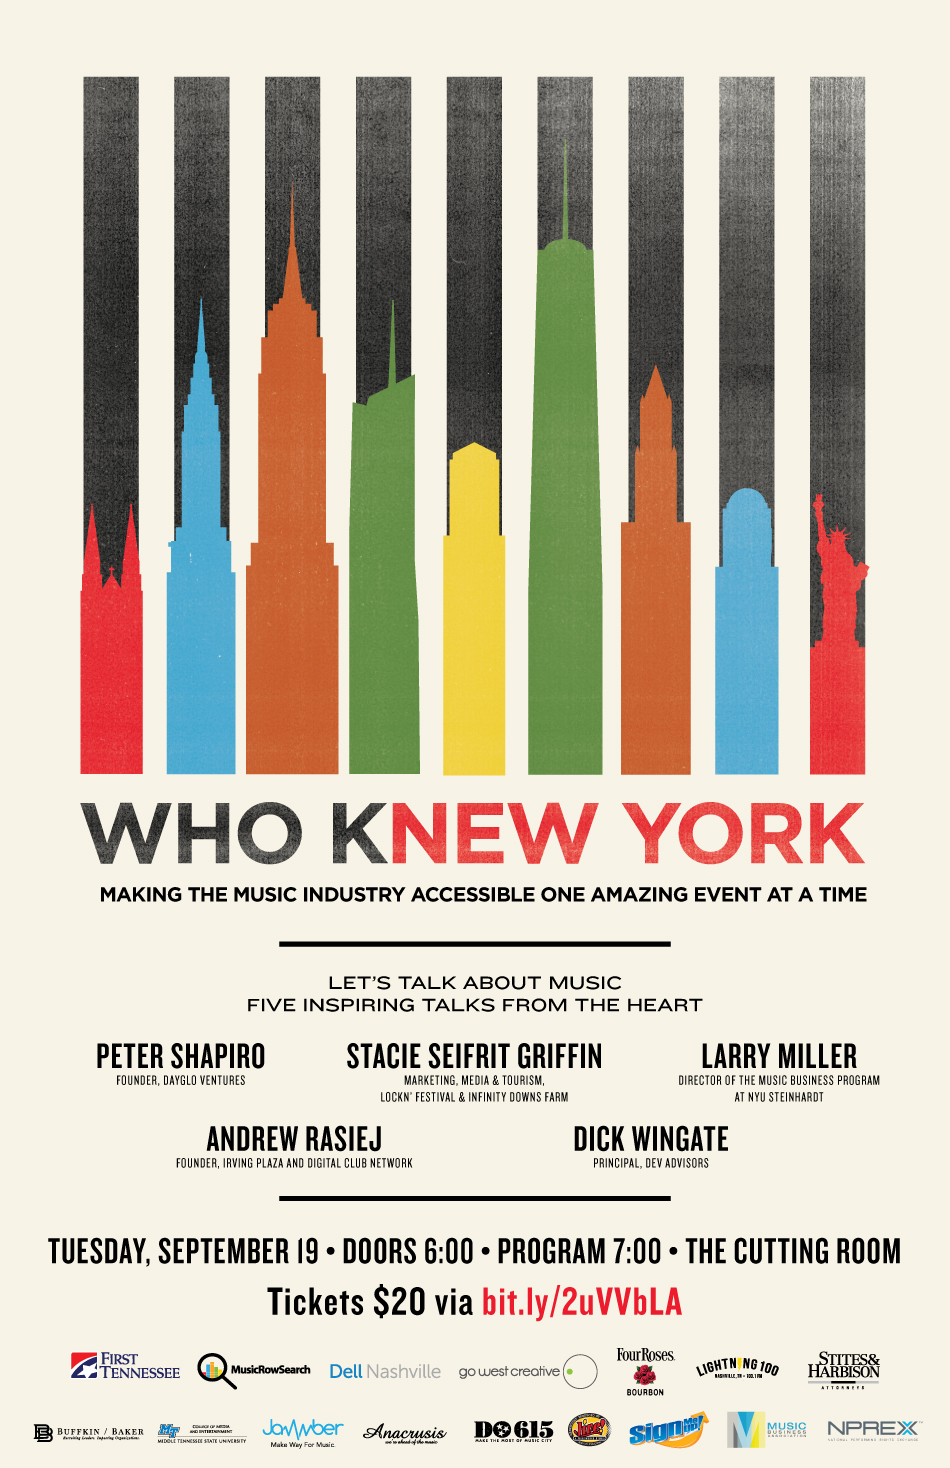 WhoKnew_Poster-NYC2017-3.jpg